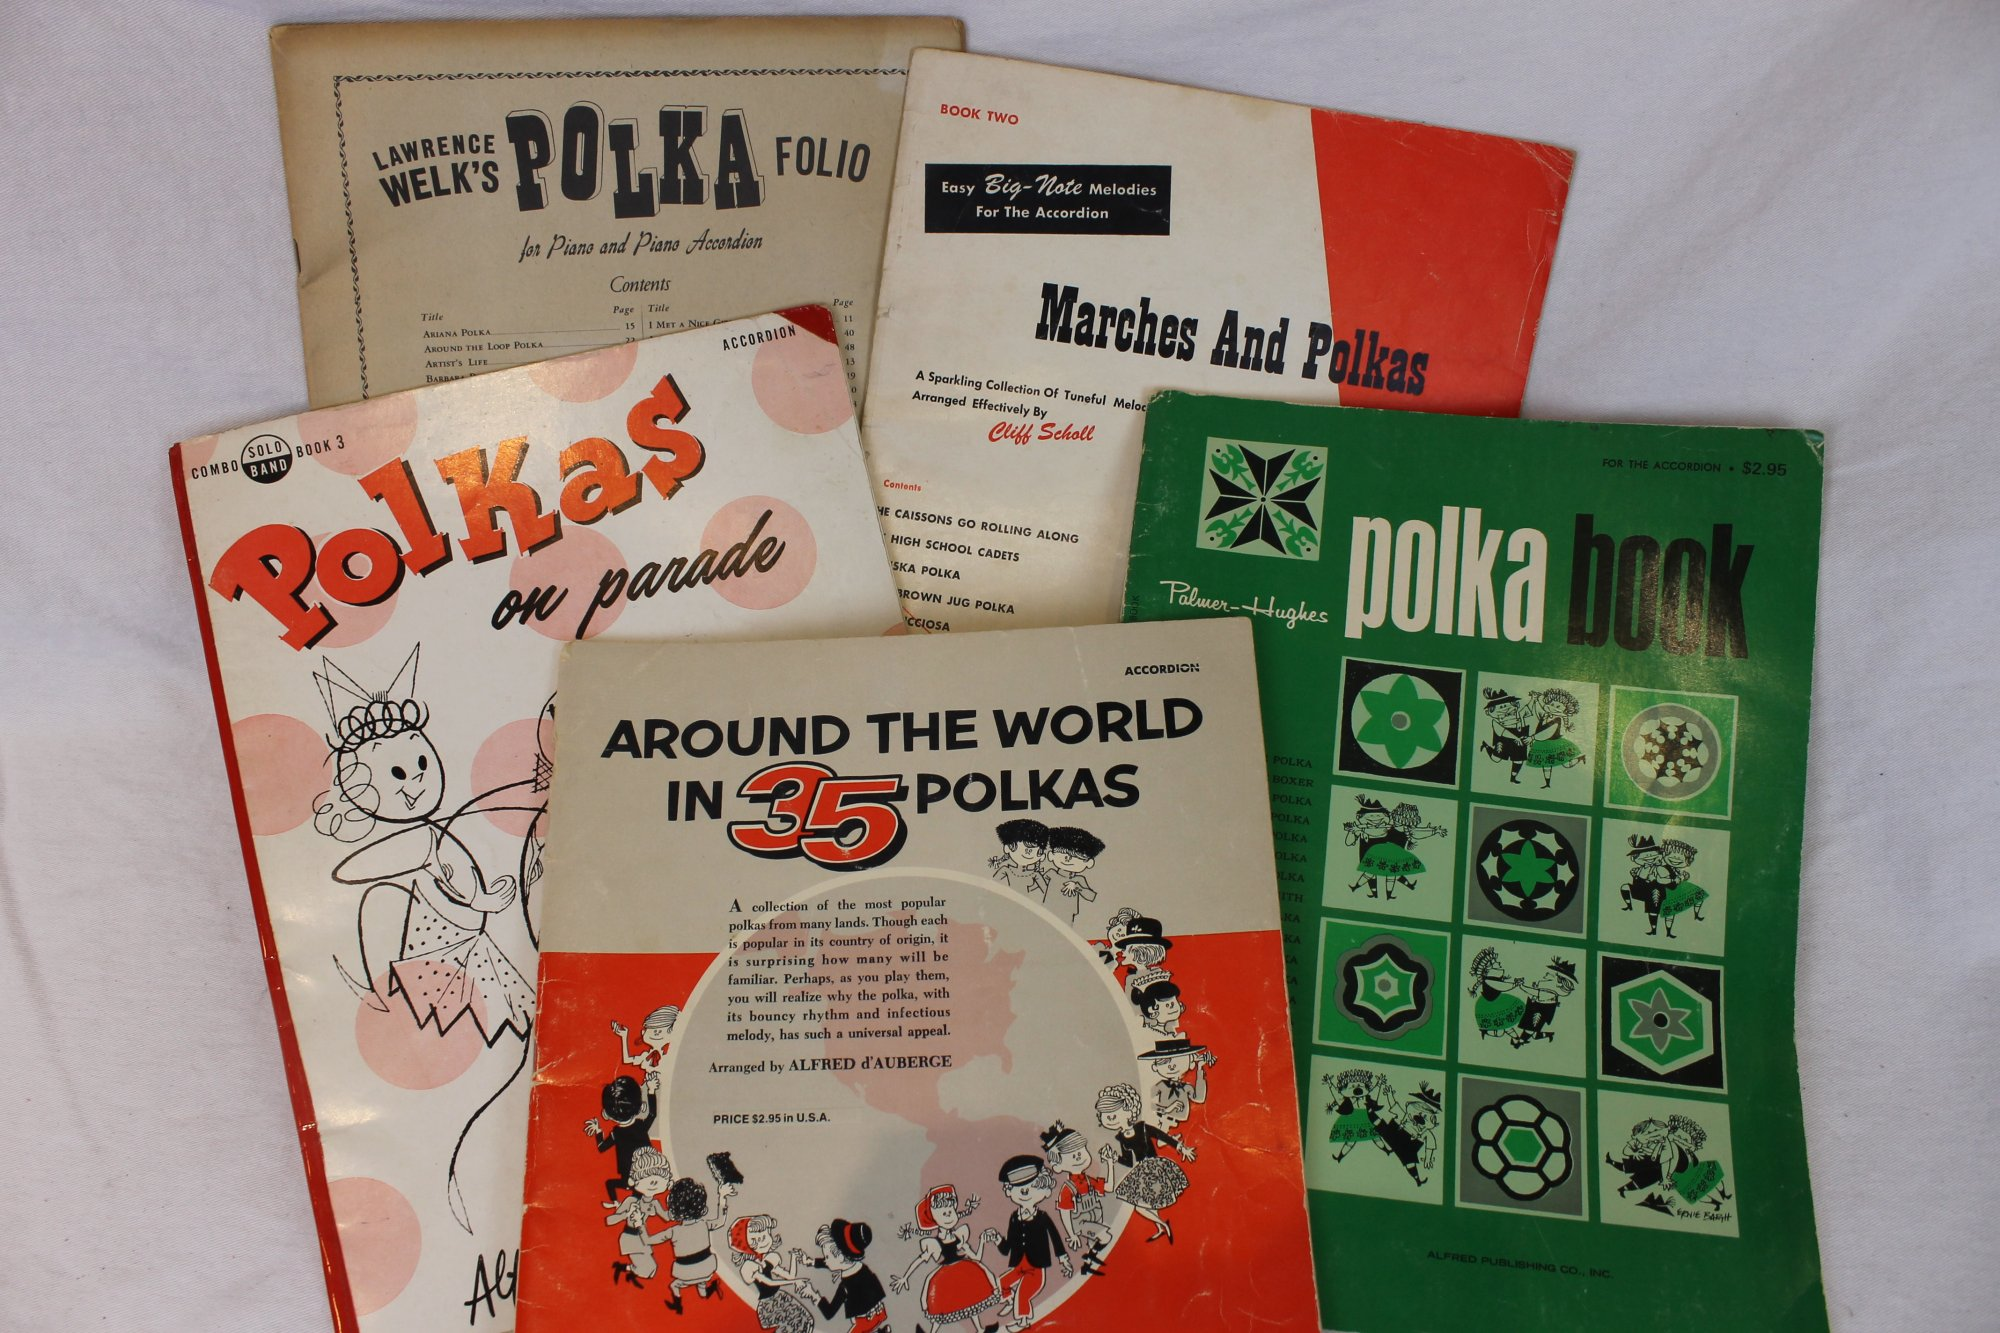 Lot of 5 Used Piano Accordion Books and Sheets - Polka Books